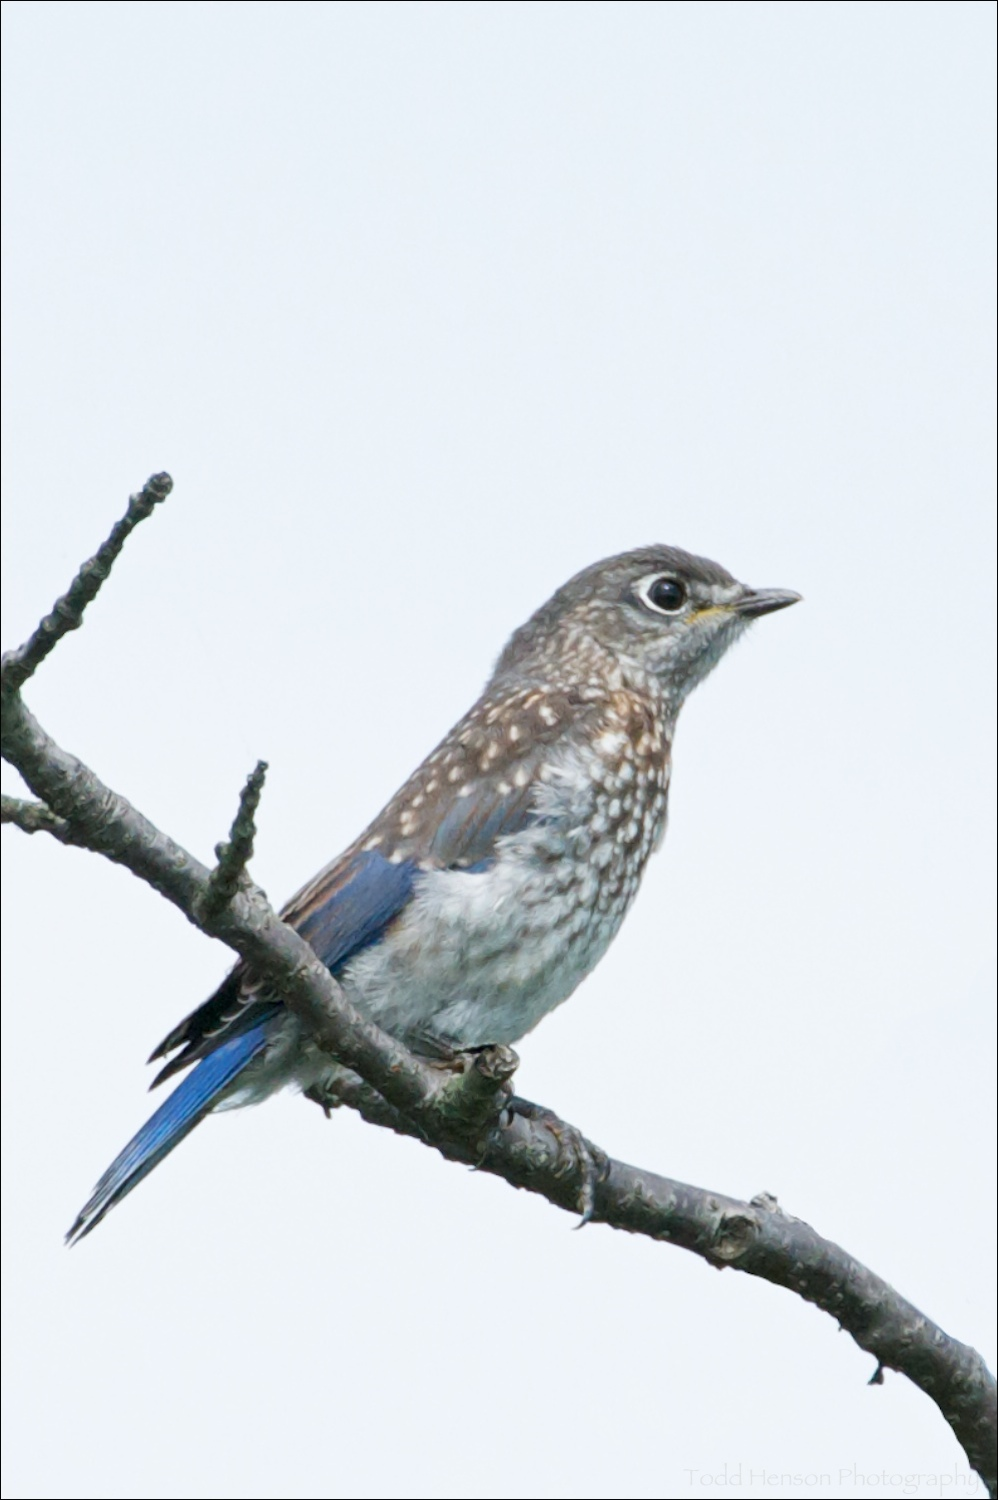 Juvenile Eastern Bluebird in tree